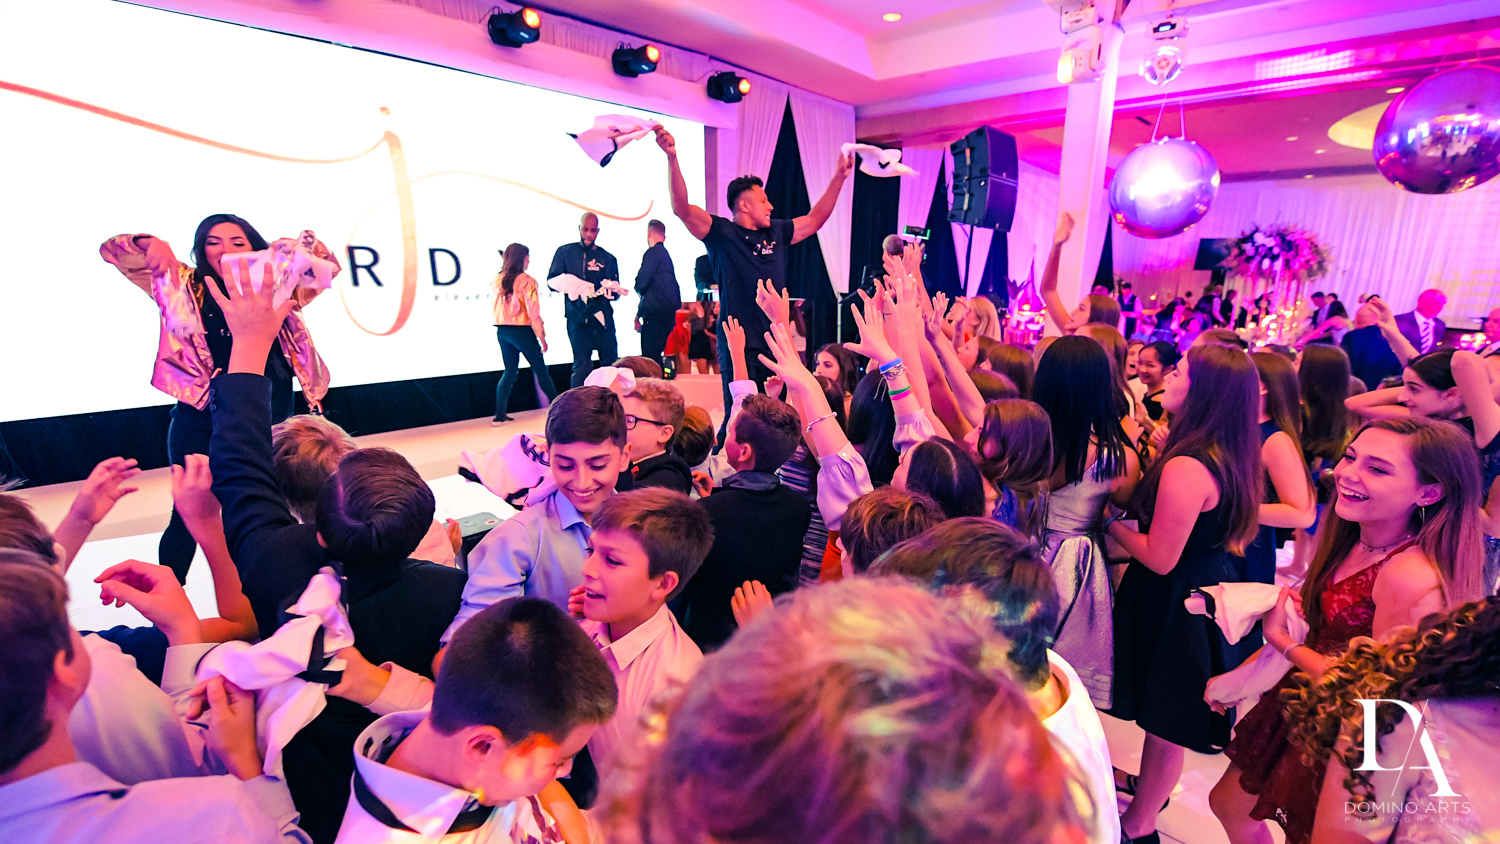 fun party at Masquerade Ball Bat Mitzvah at Ritz Carlton Fort Lauderdale by Domino Arts Photography